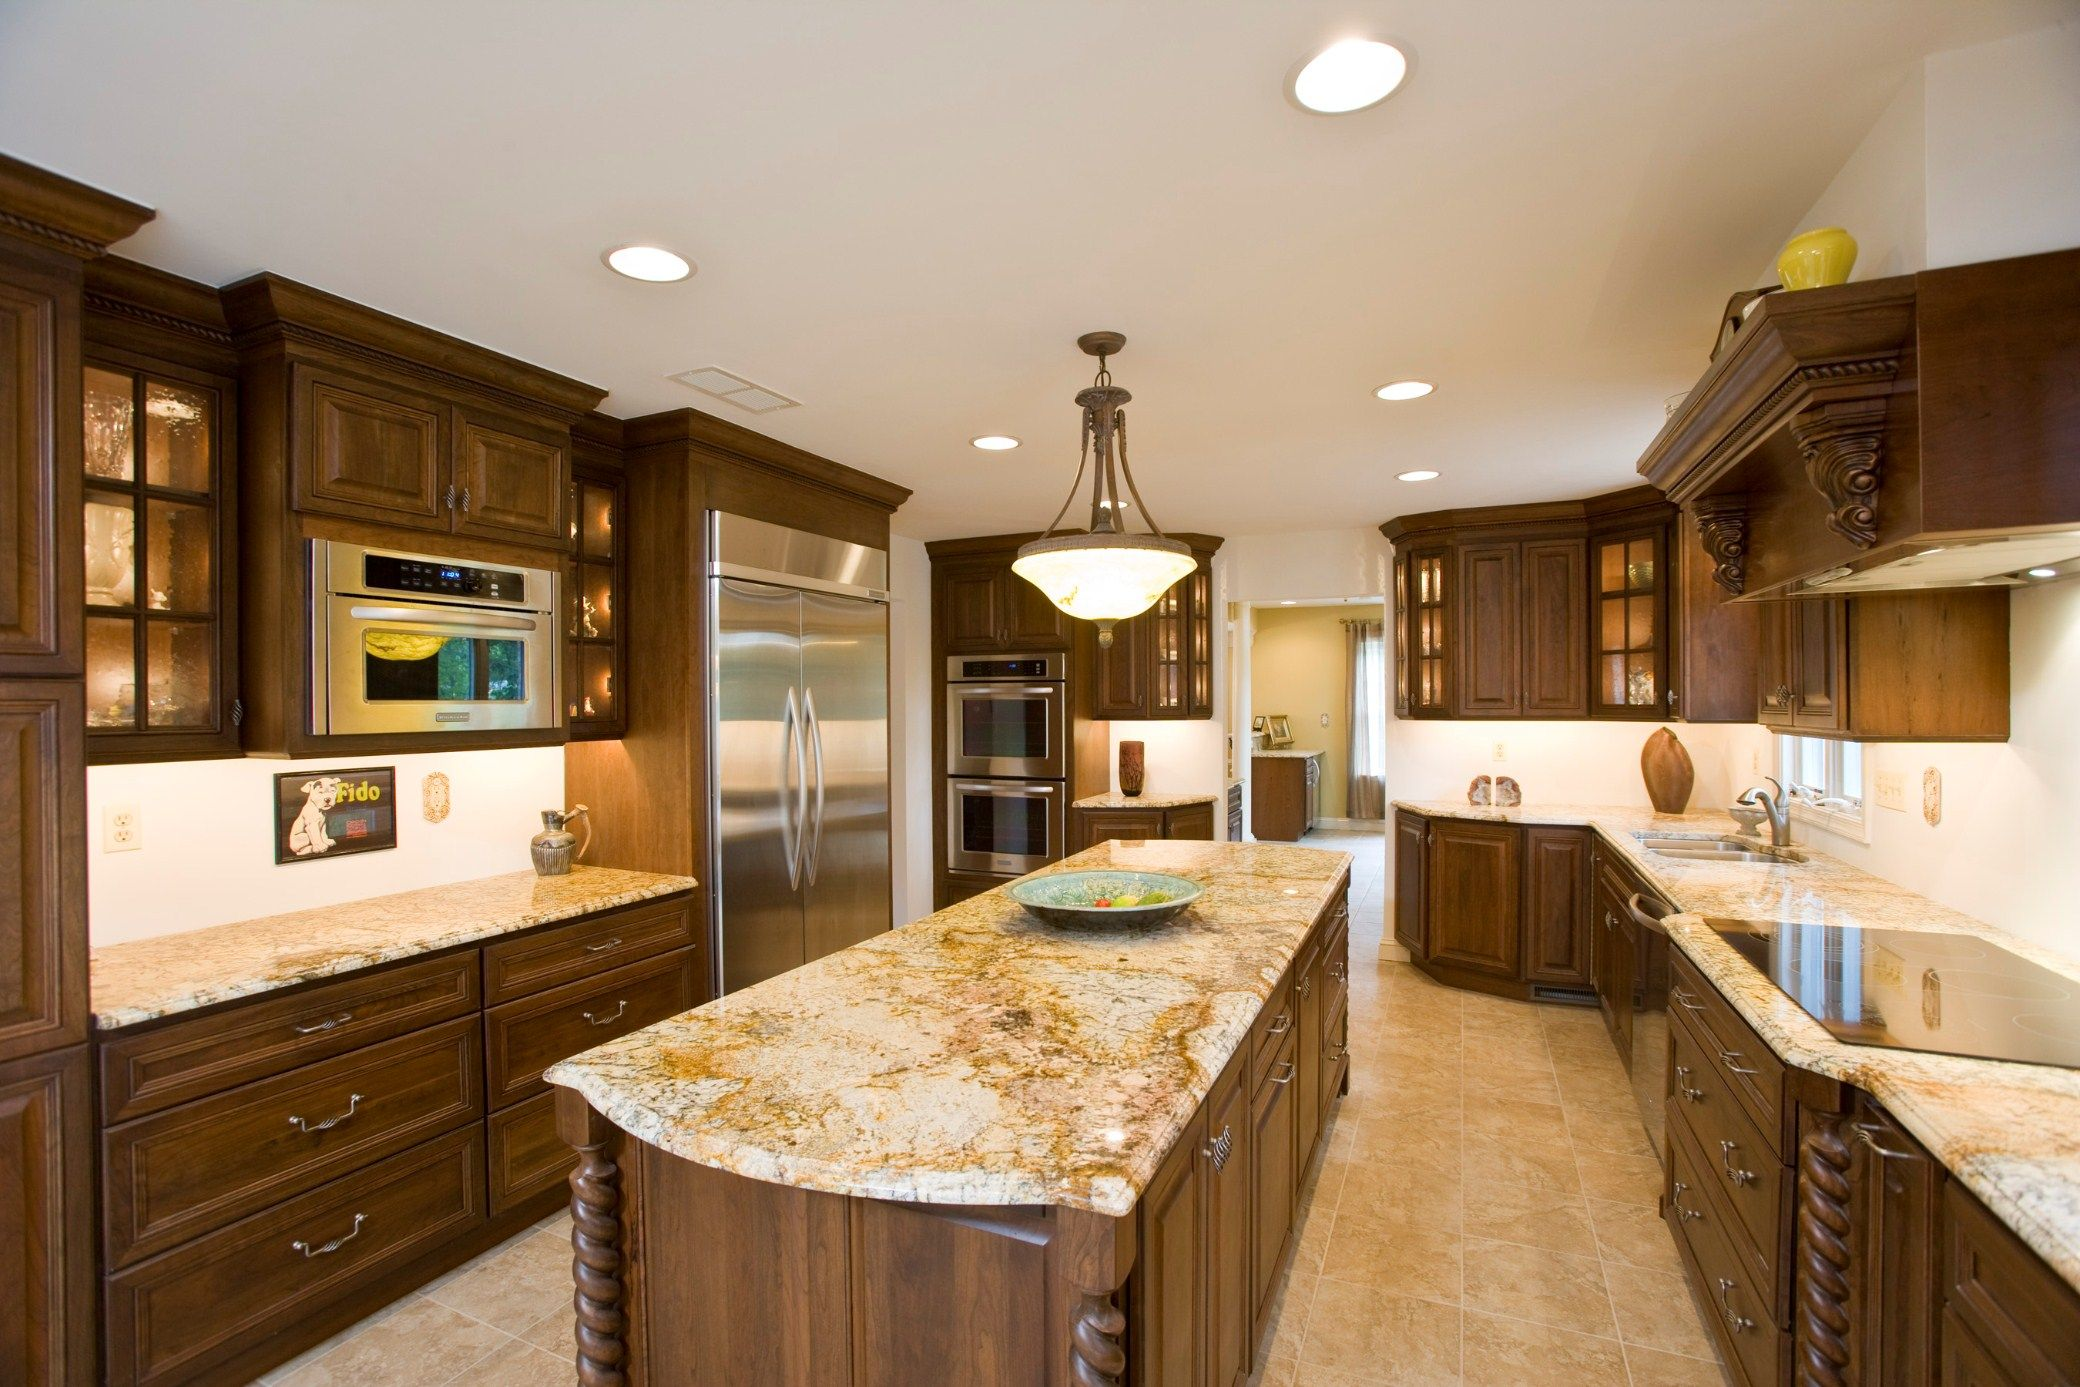 Colors Of Granite Kitchen Countertops Oak Cabinets And White Granite Counters Granite Countertops